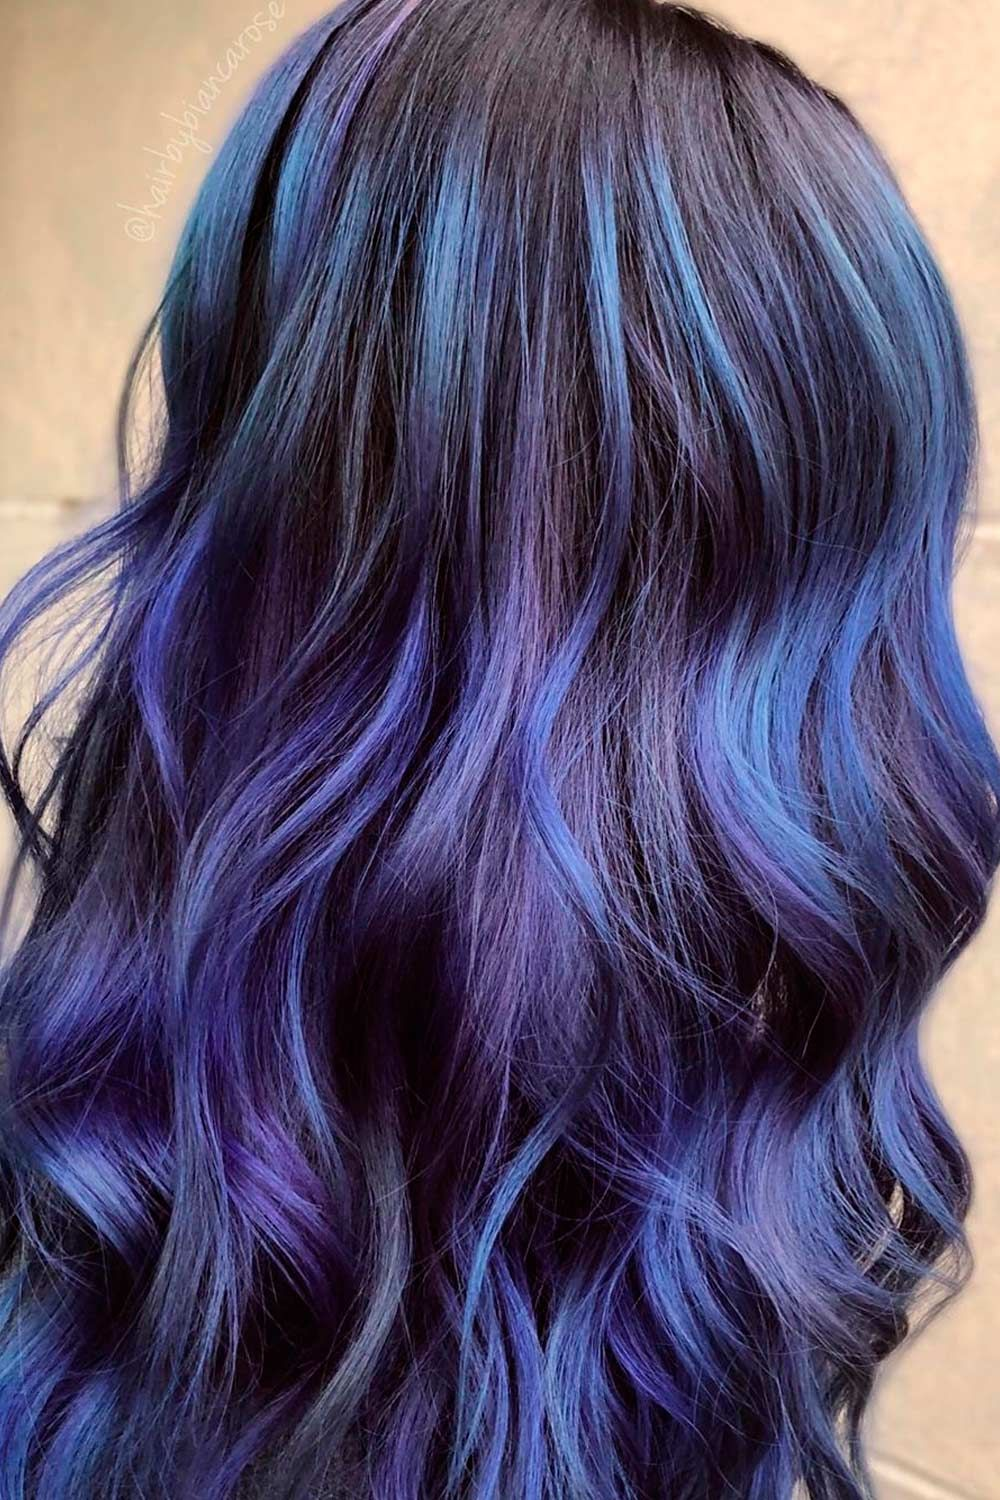 Highlighted Galaxy Hair On Dark Hair